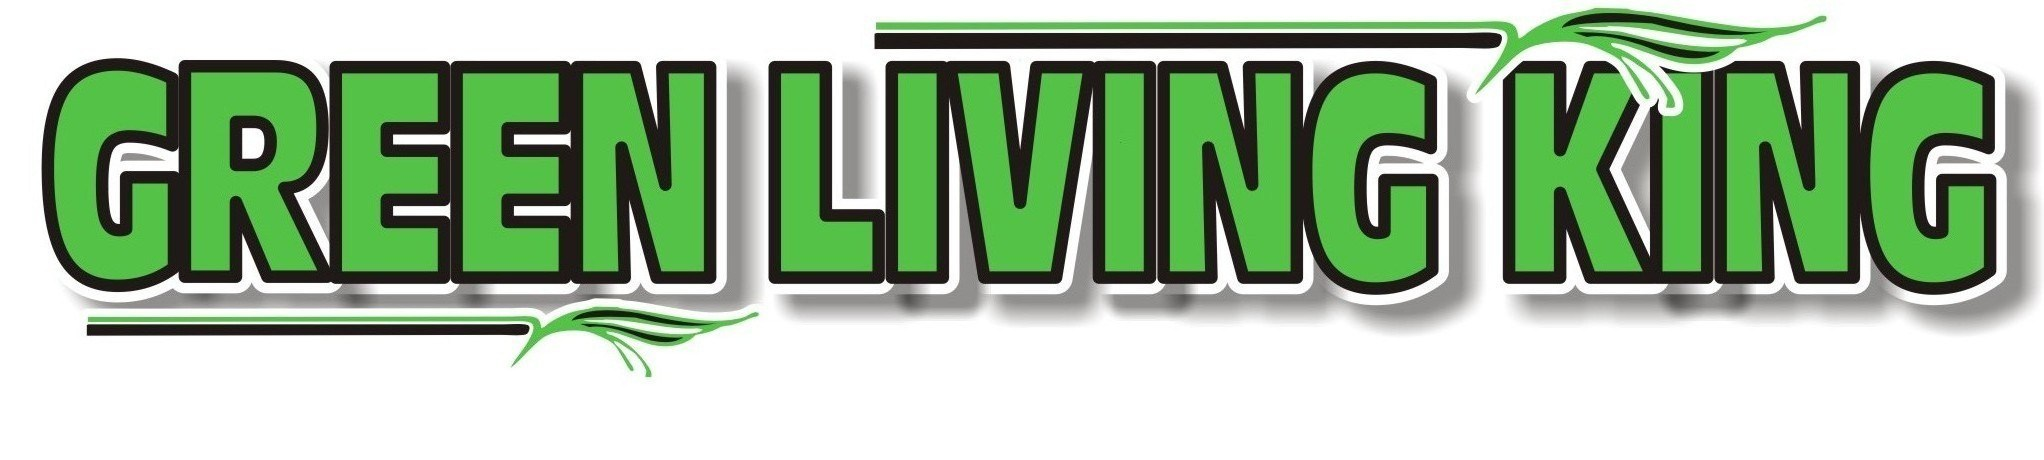 Green Living King Reviews Ratings You Can Trust